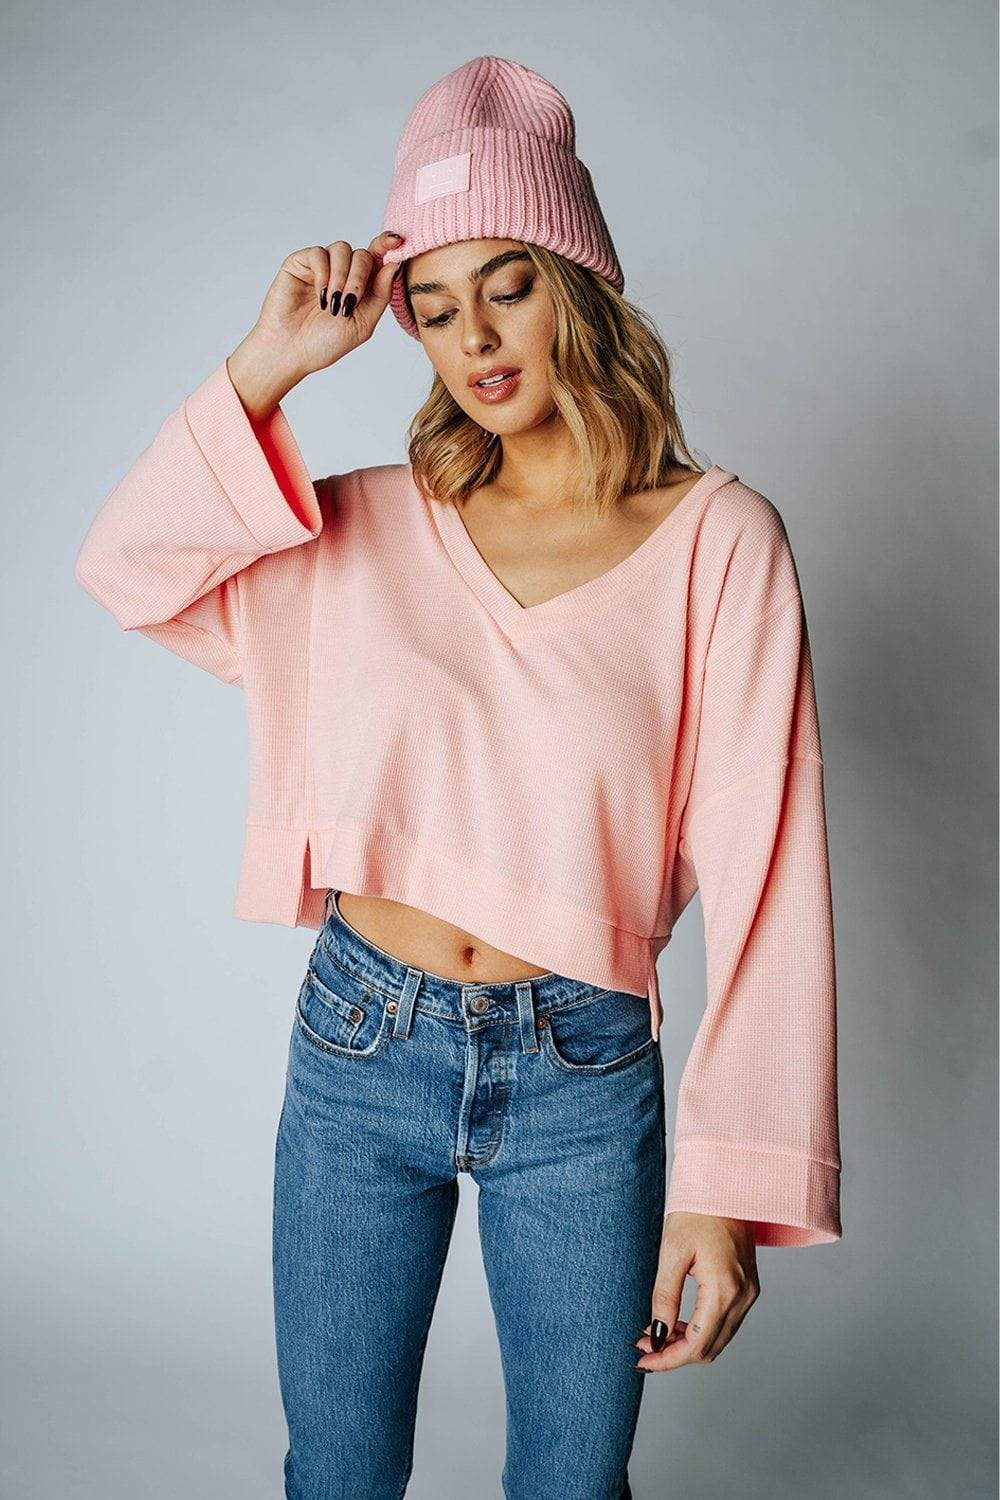 The Charades Top in Pink Top hyfve Clad and Cloth